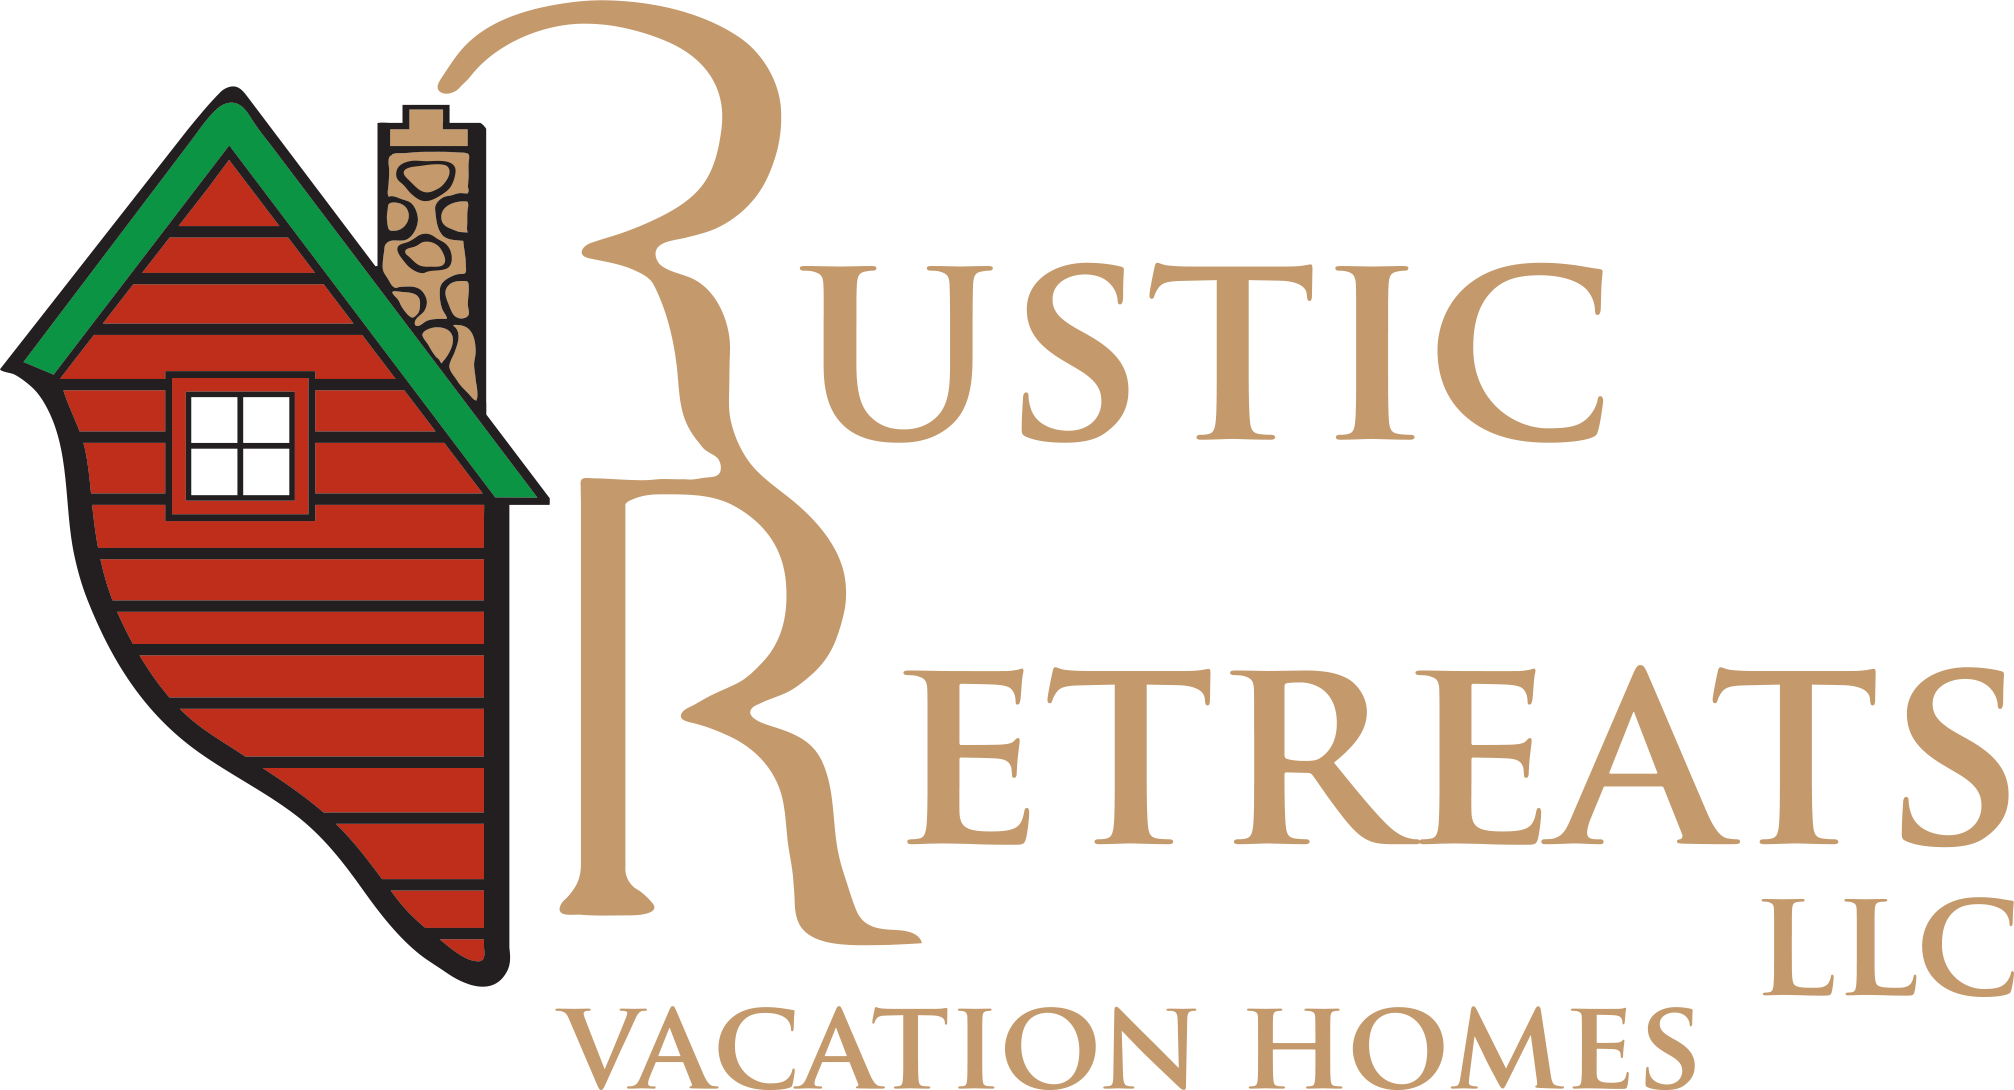 Rustic Retreats LLC